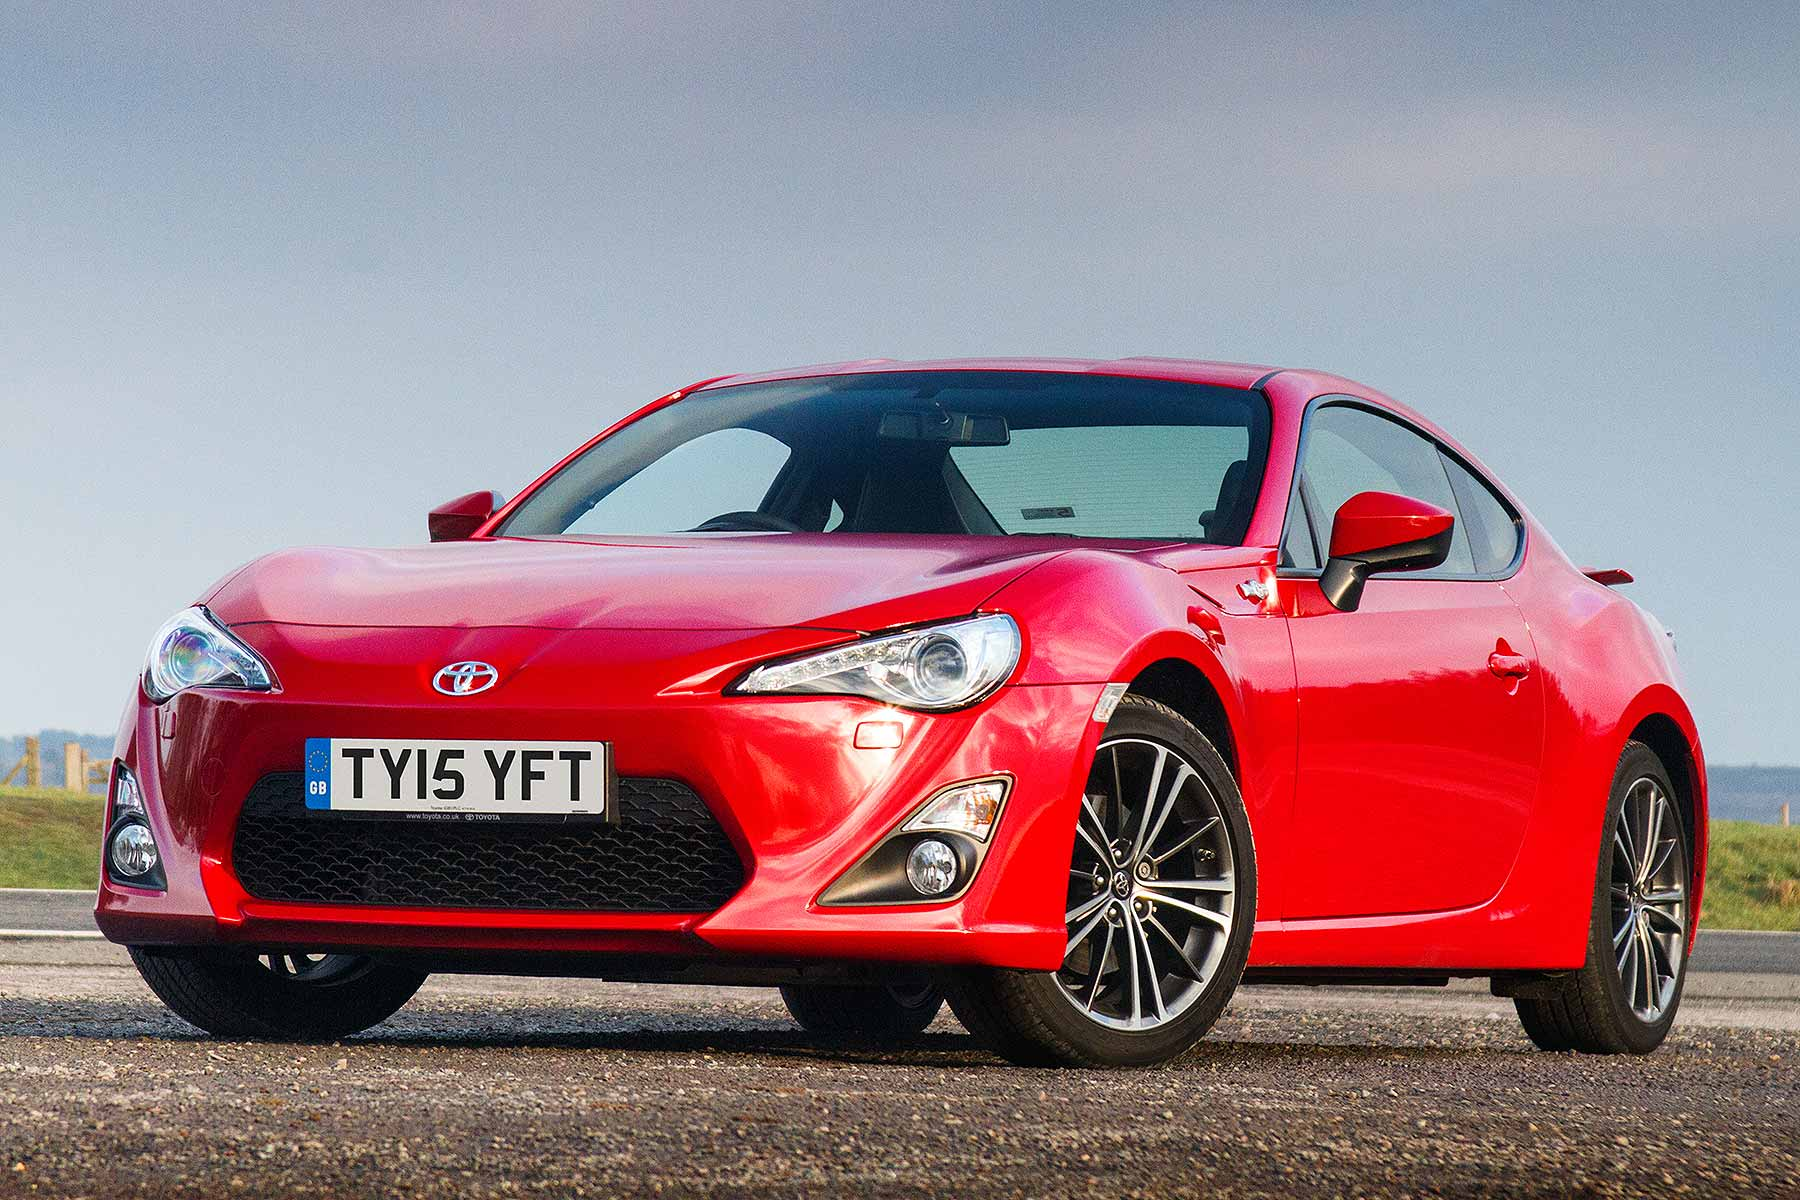 toyota is recalling the gt86 for a steering fault motoring research. Black Bedroom Furniture Sets. Home Design Ideas